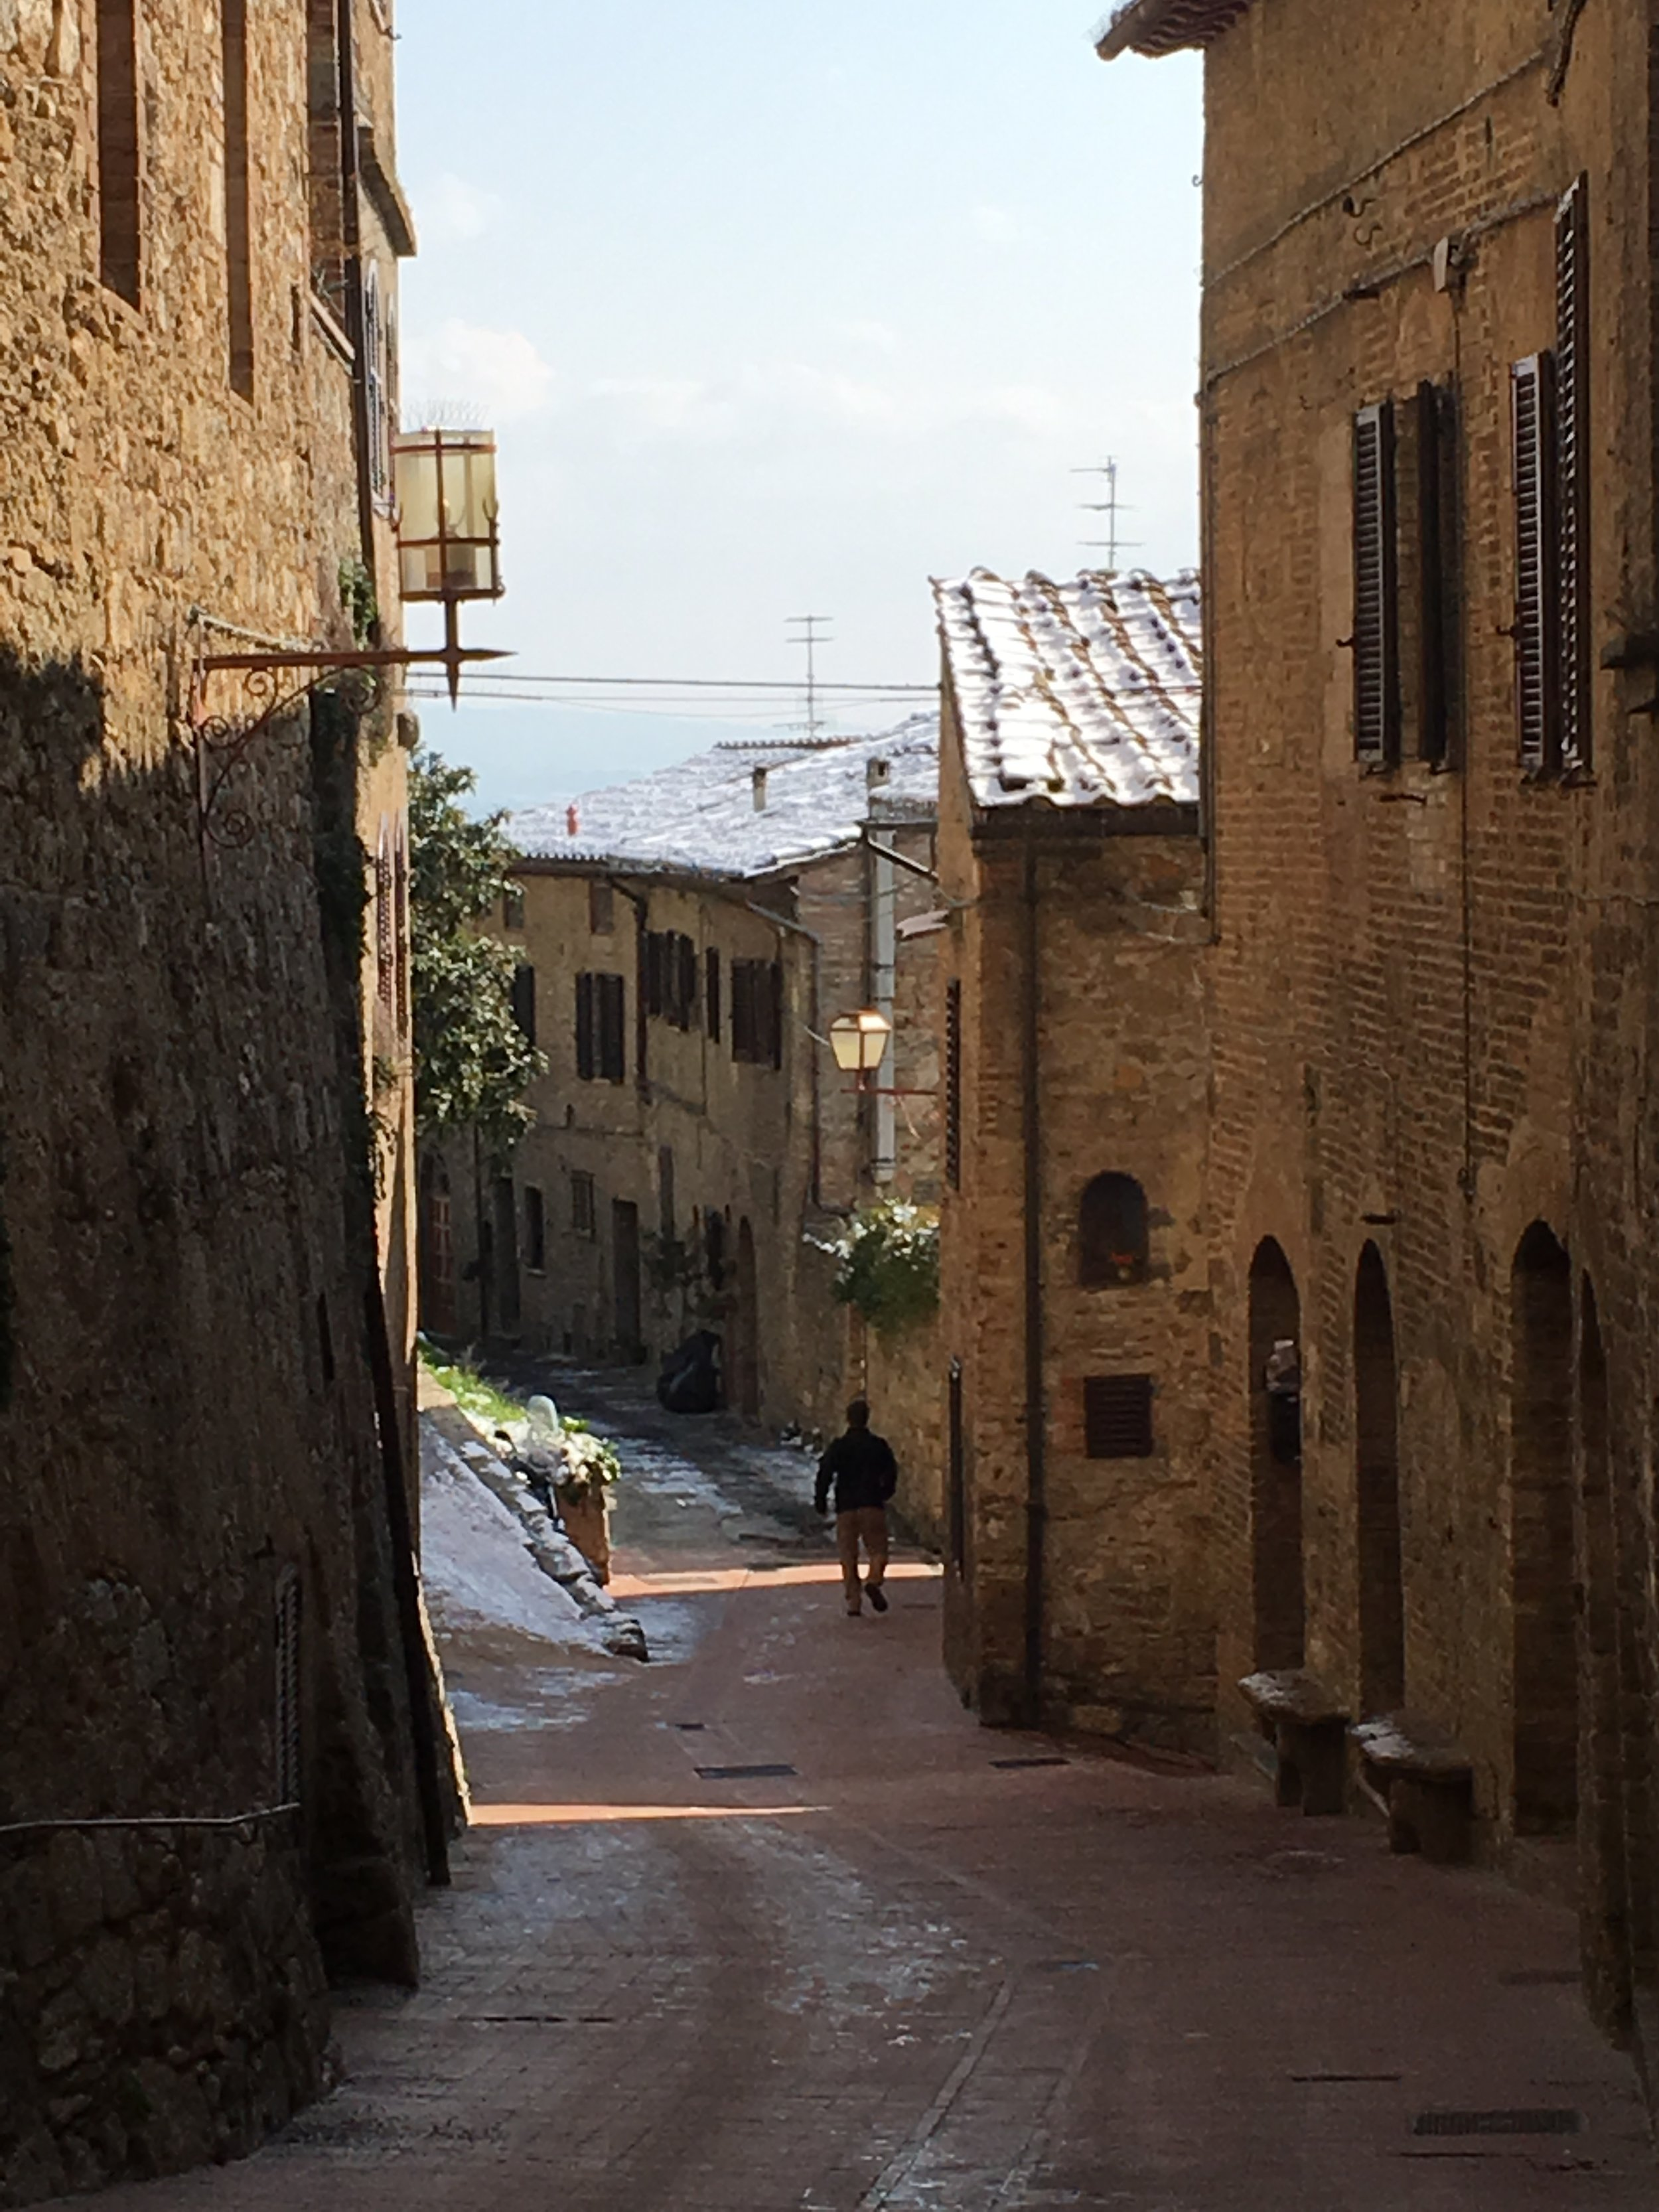 Snowy streets and rooftops in San Gimignano, February 2018